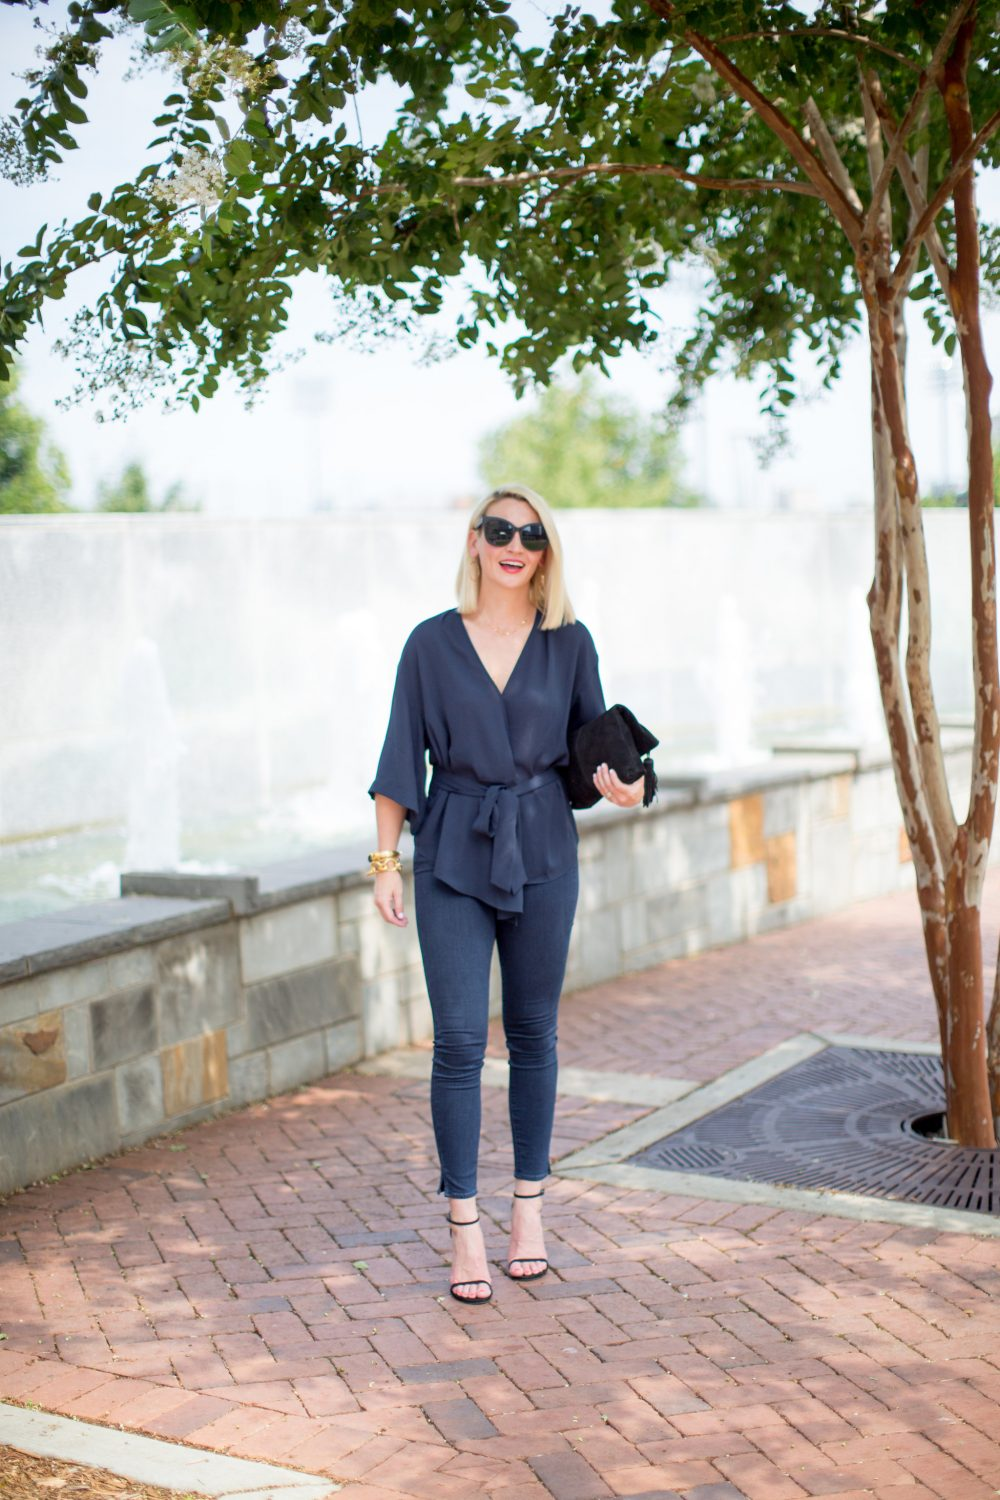 Mom style: Navy blouse from The Nordstrom Sale